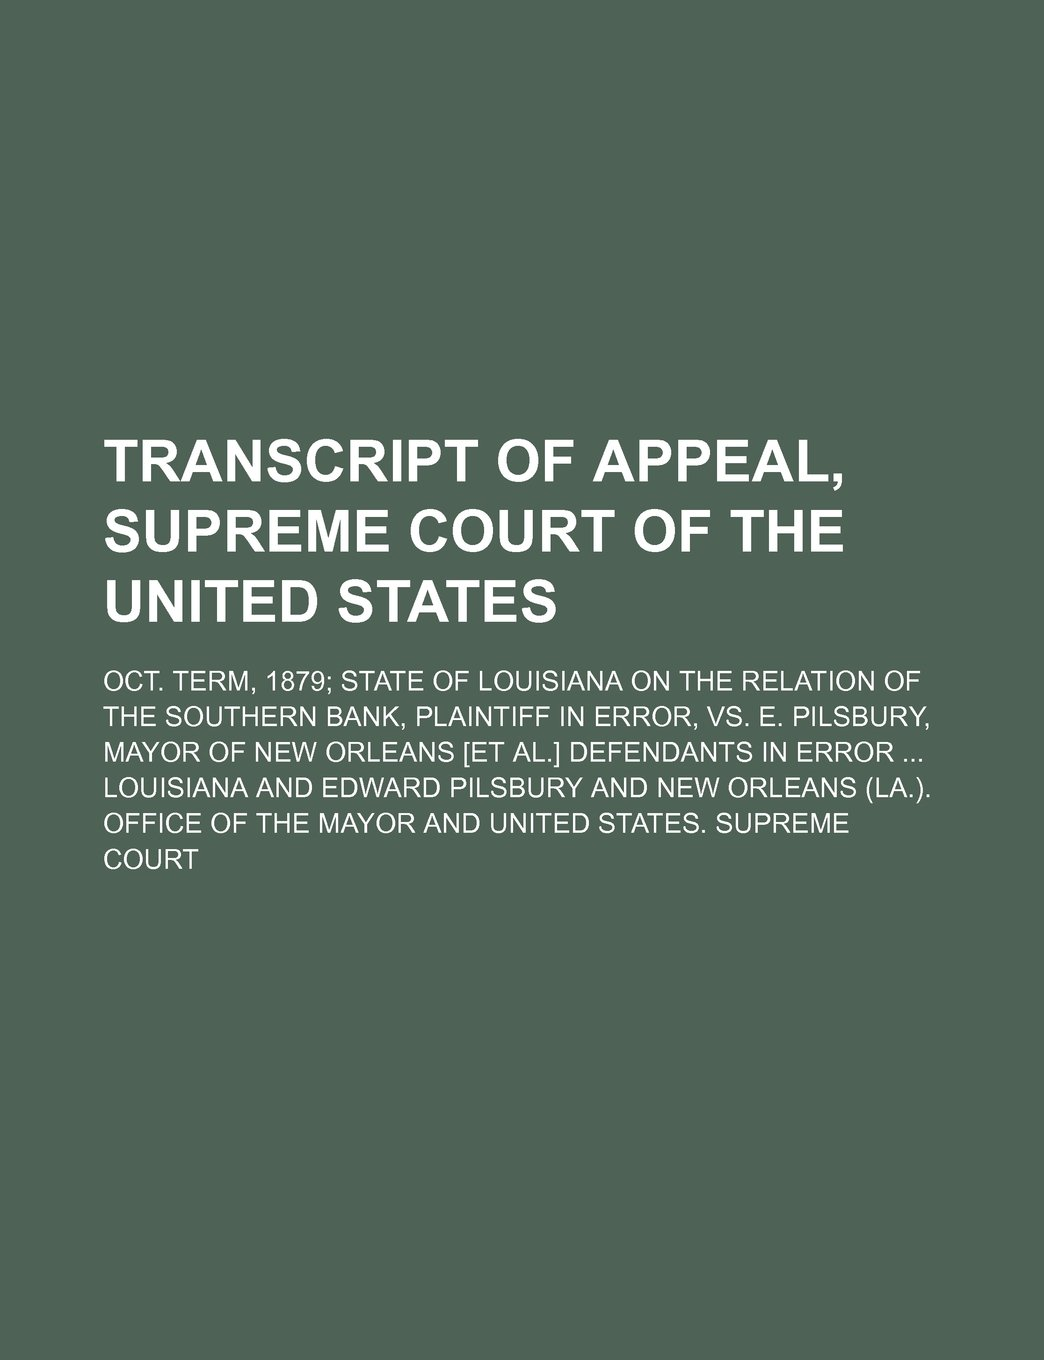 Read Online Transcript of Appeal, Supreme Court of the United States; Oct. Term, 1879 State of Louisiana on the Relation of the Southern Bank, Plaintiff in Error, PDF ePub fb2 book